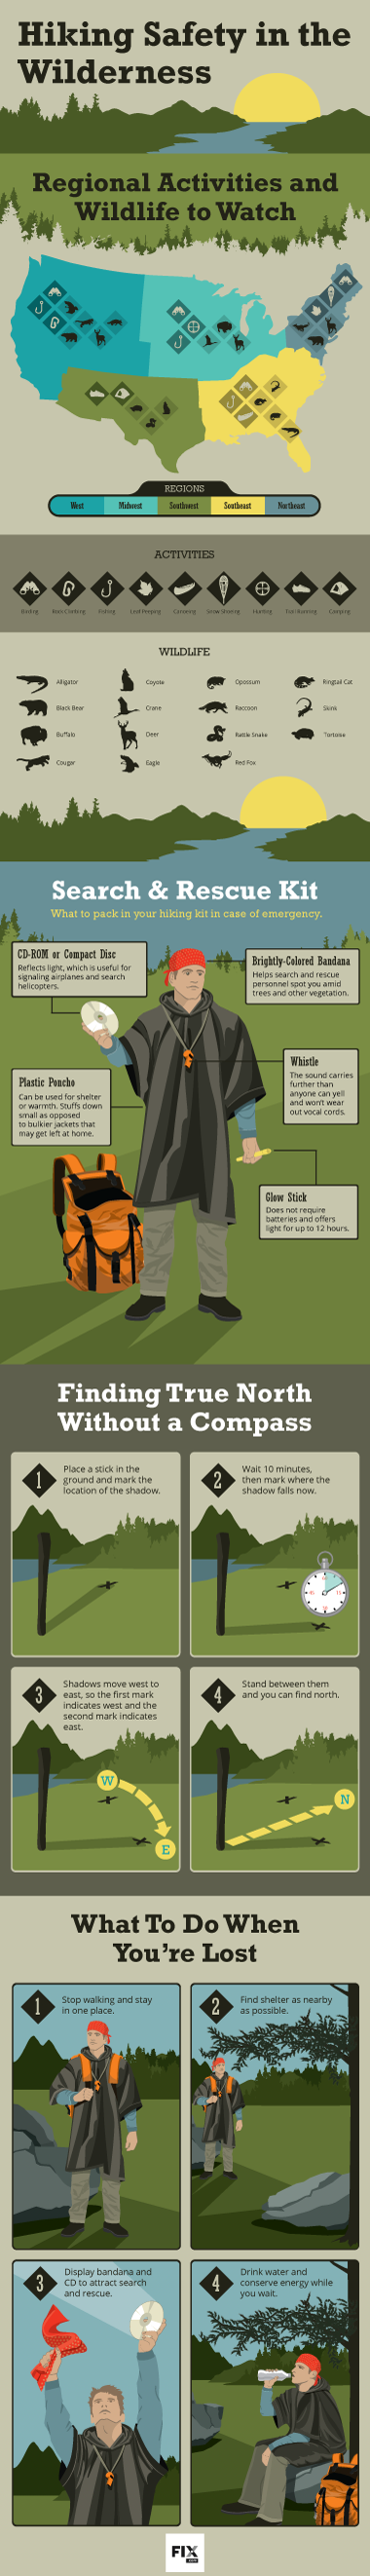 hiking-safety-wilderness-embed-small